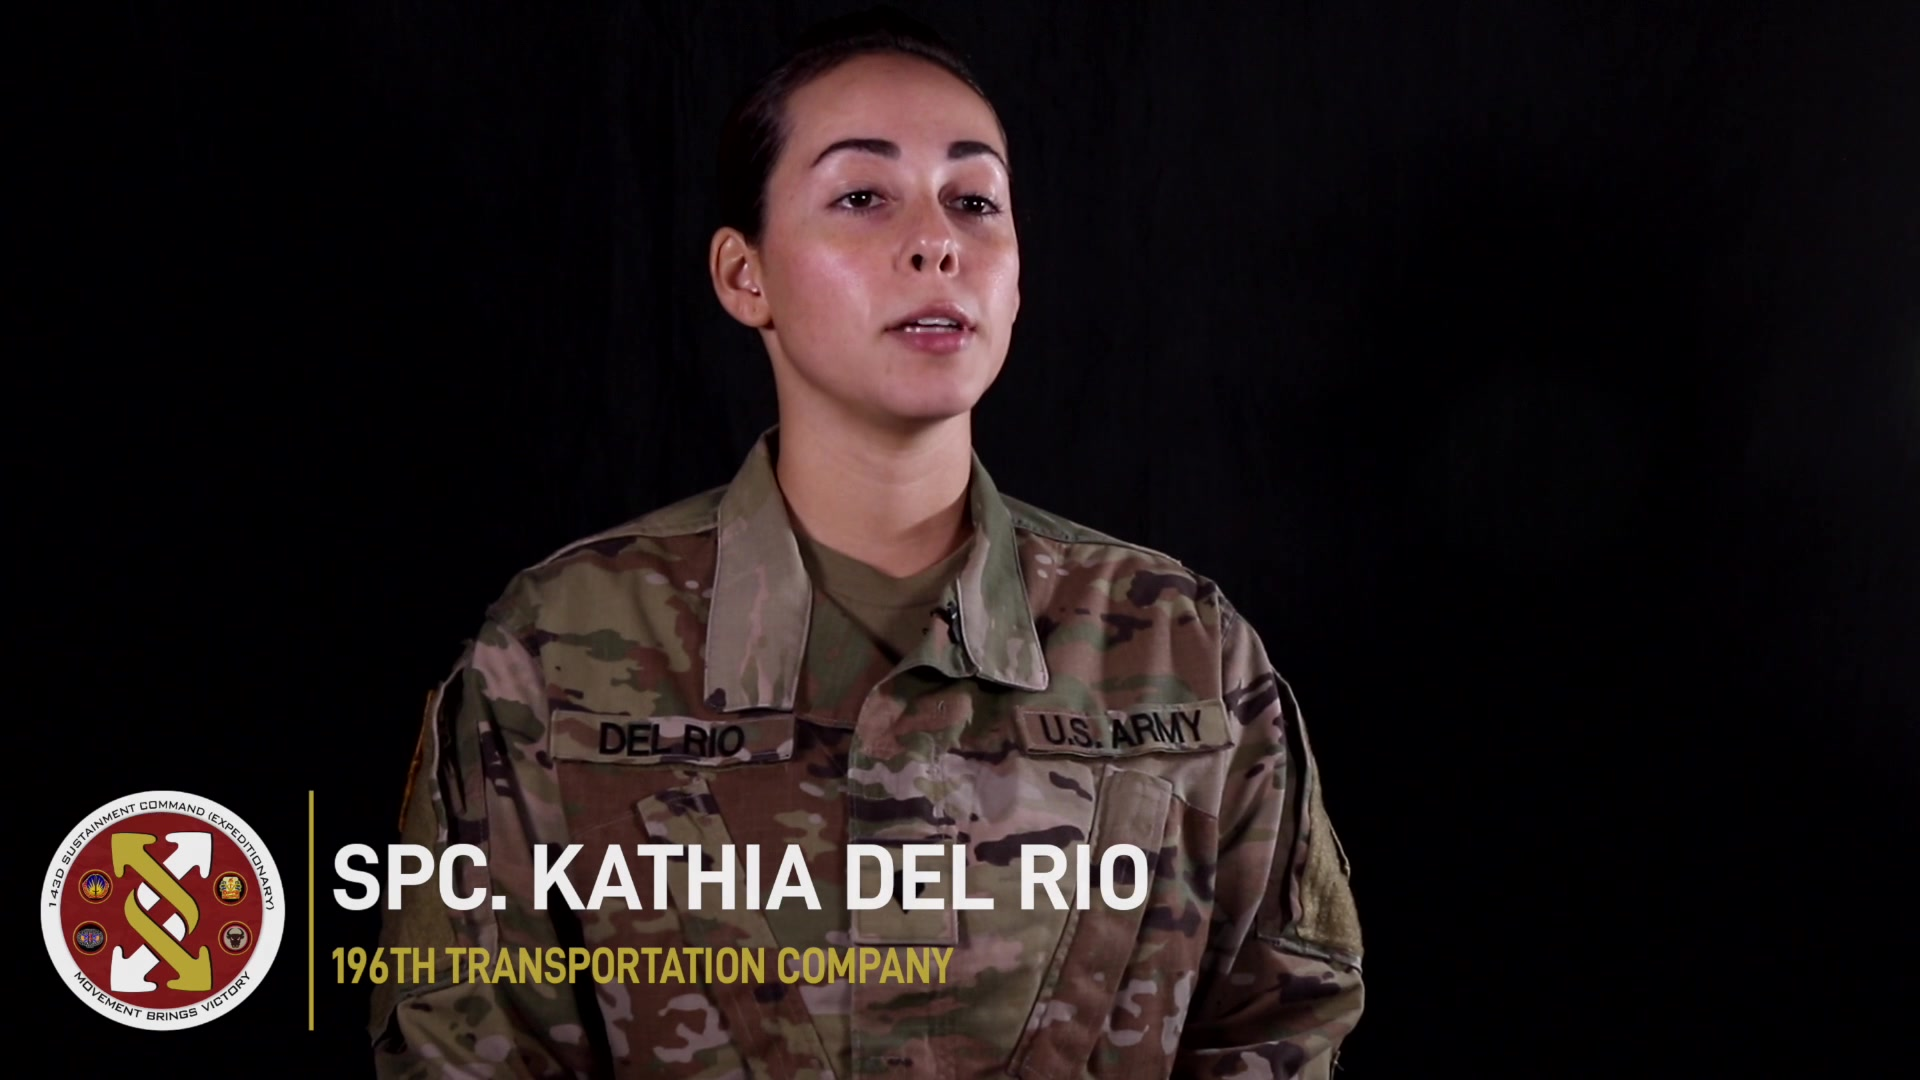 Spc. Kathia Del Rio, assigned to the 196th Transportation Company in Orlando, Fla., shares why she joined and continues to serve in the U.S. Army Reserve. (U.S. Army video by Spc. Leon Orange)